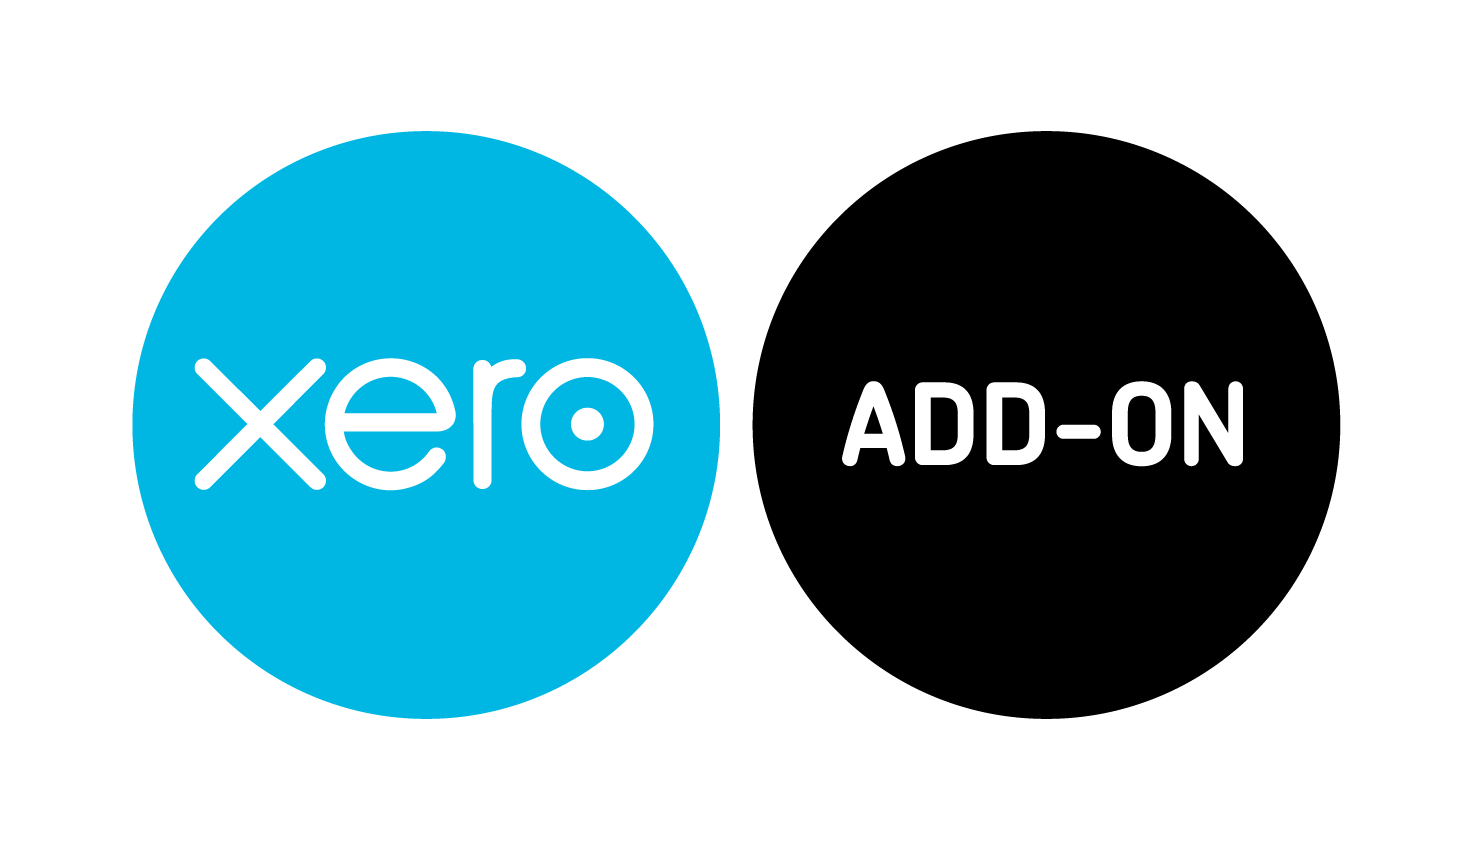 Xero Add-On logo